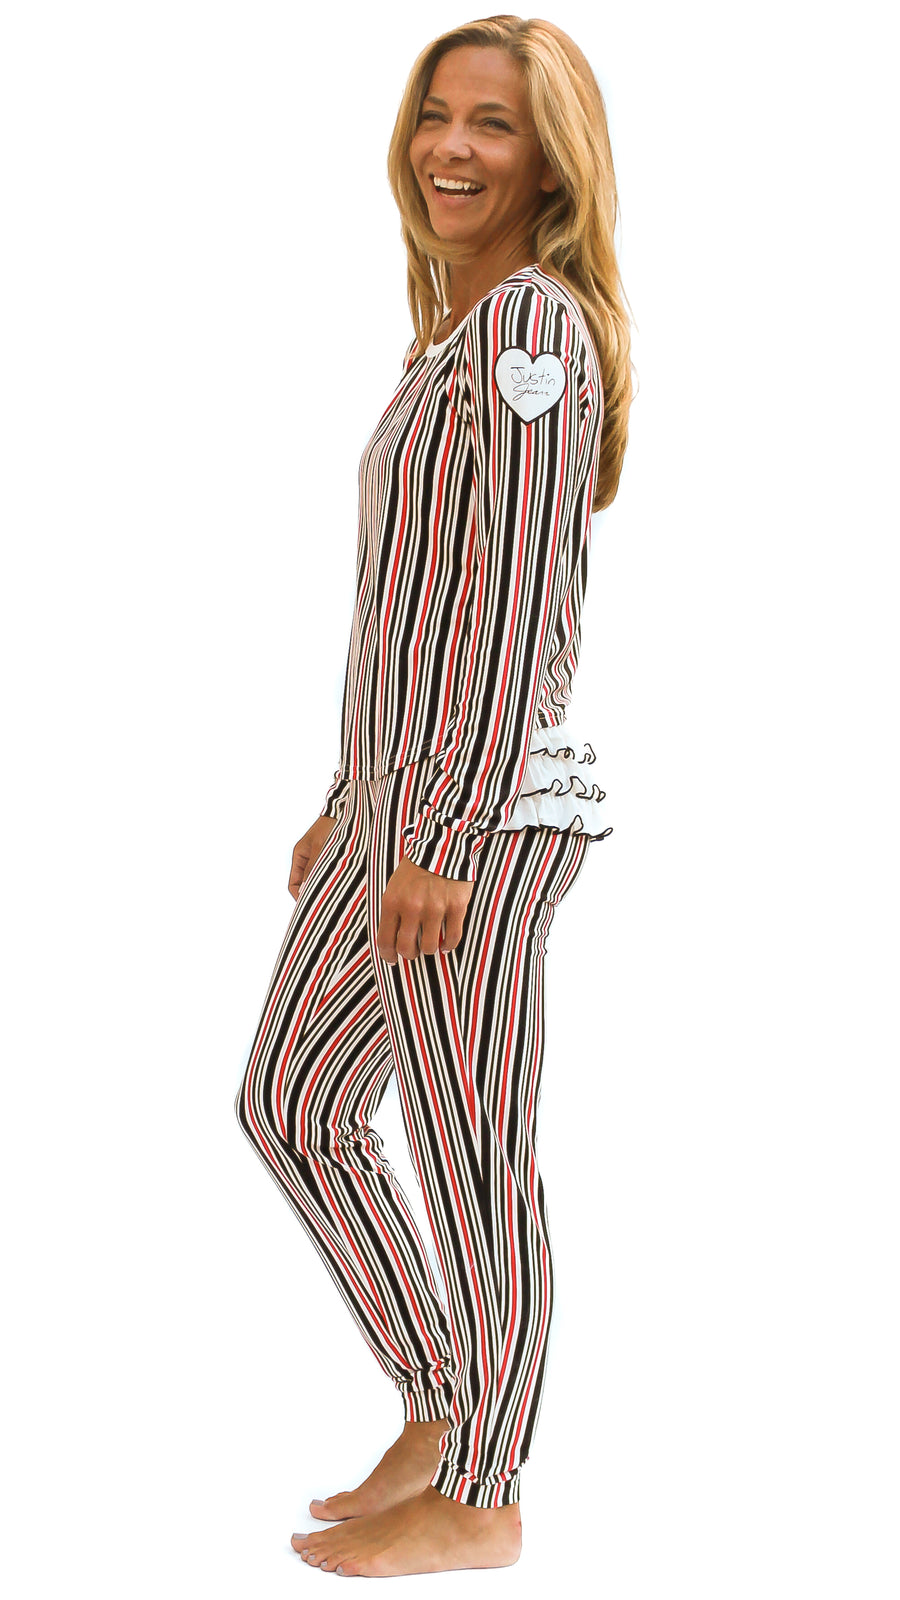 The Brooklyn Pajama in Joy Print (Women's Sizes)